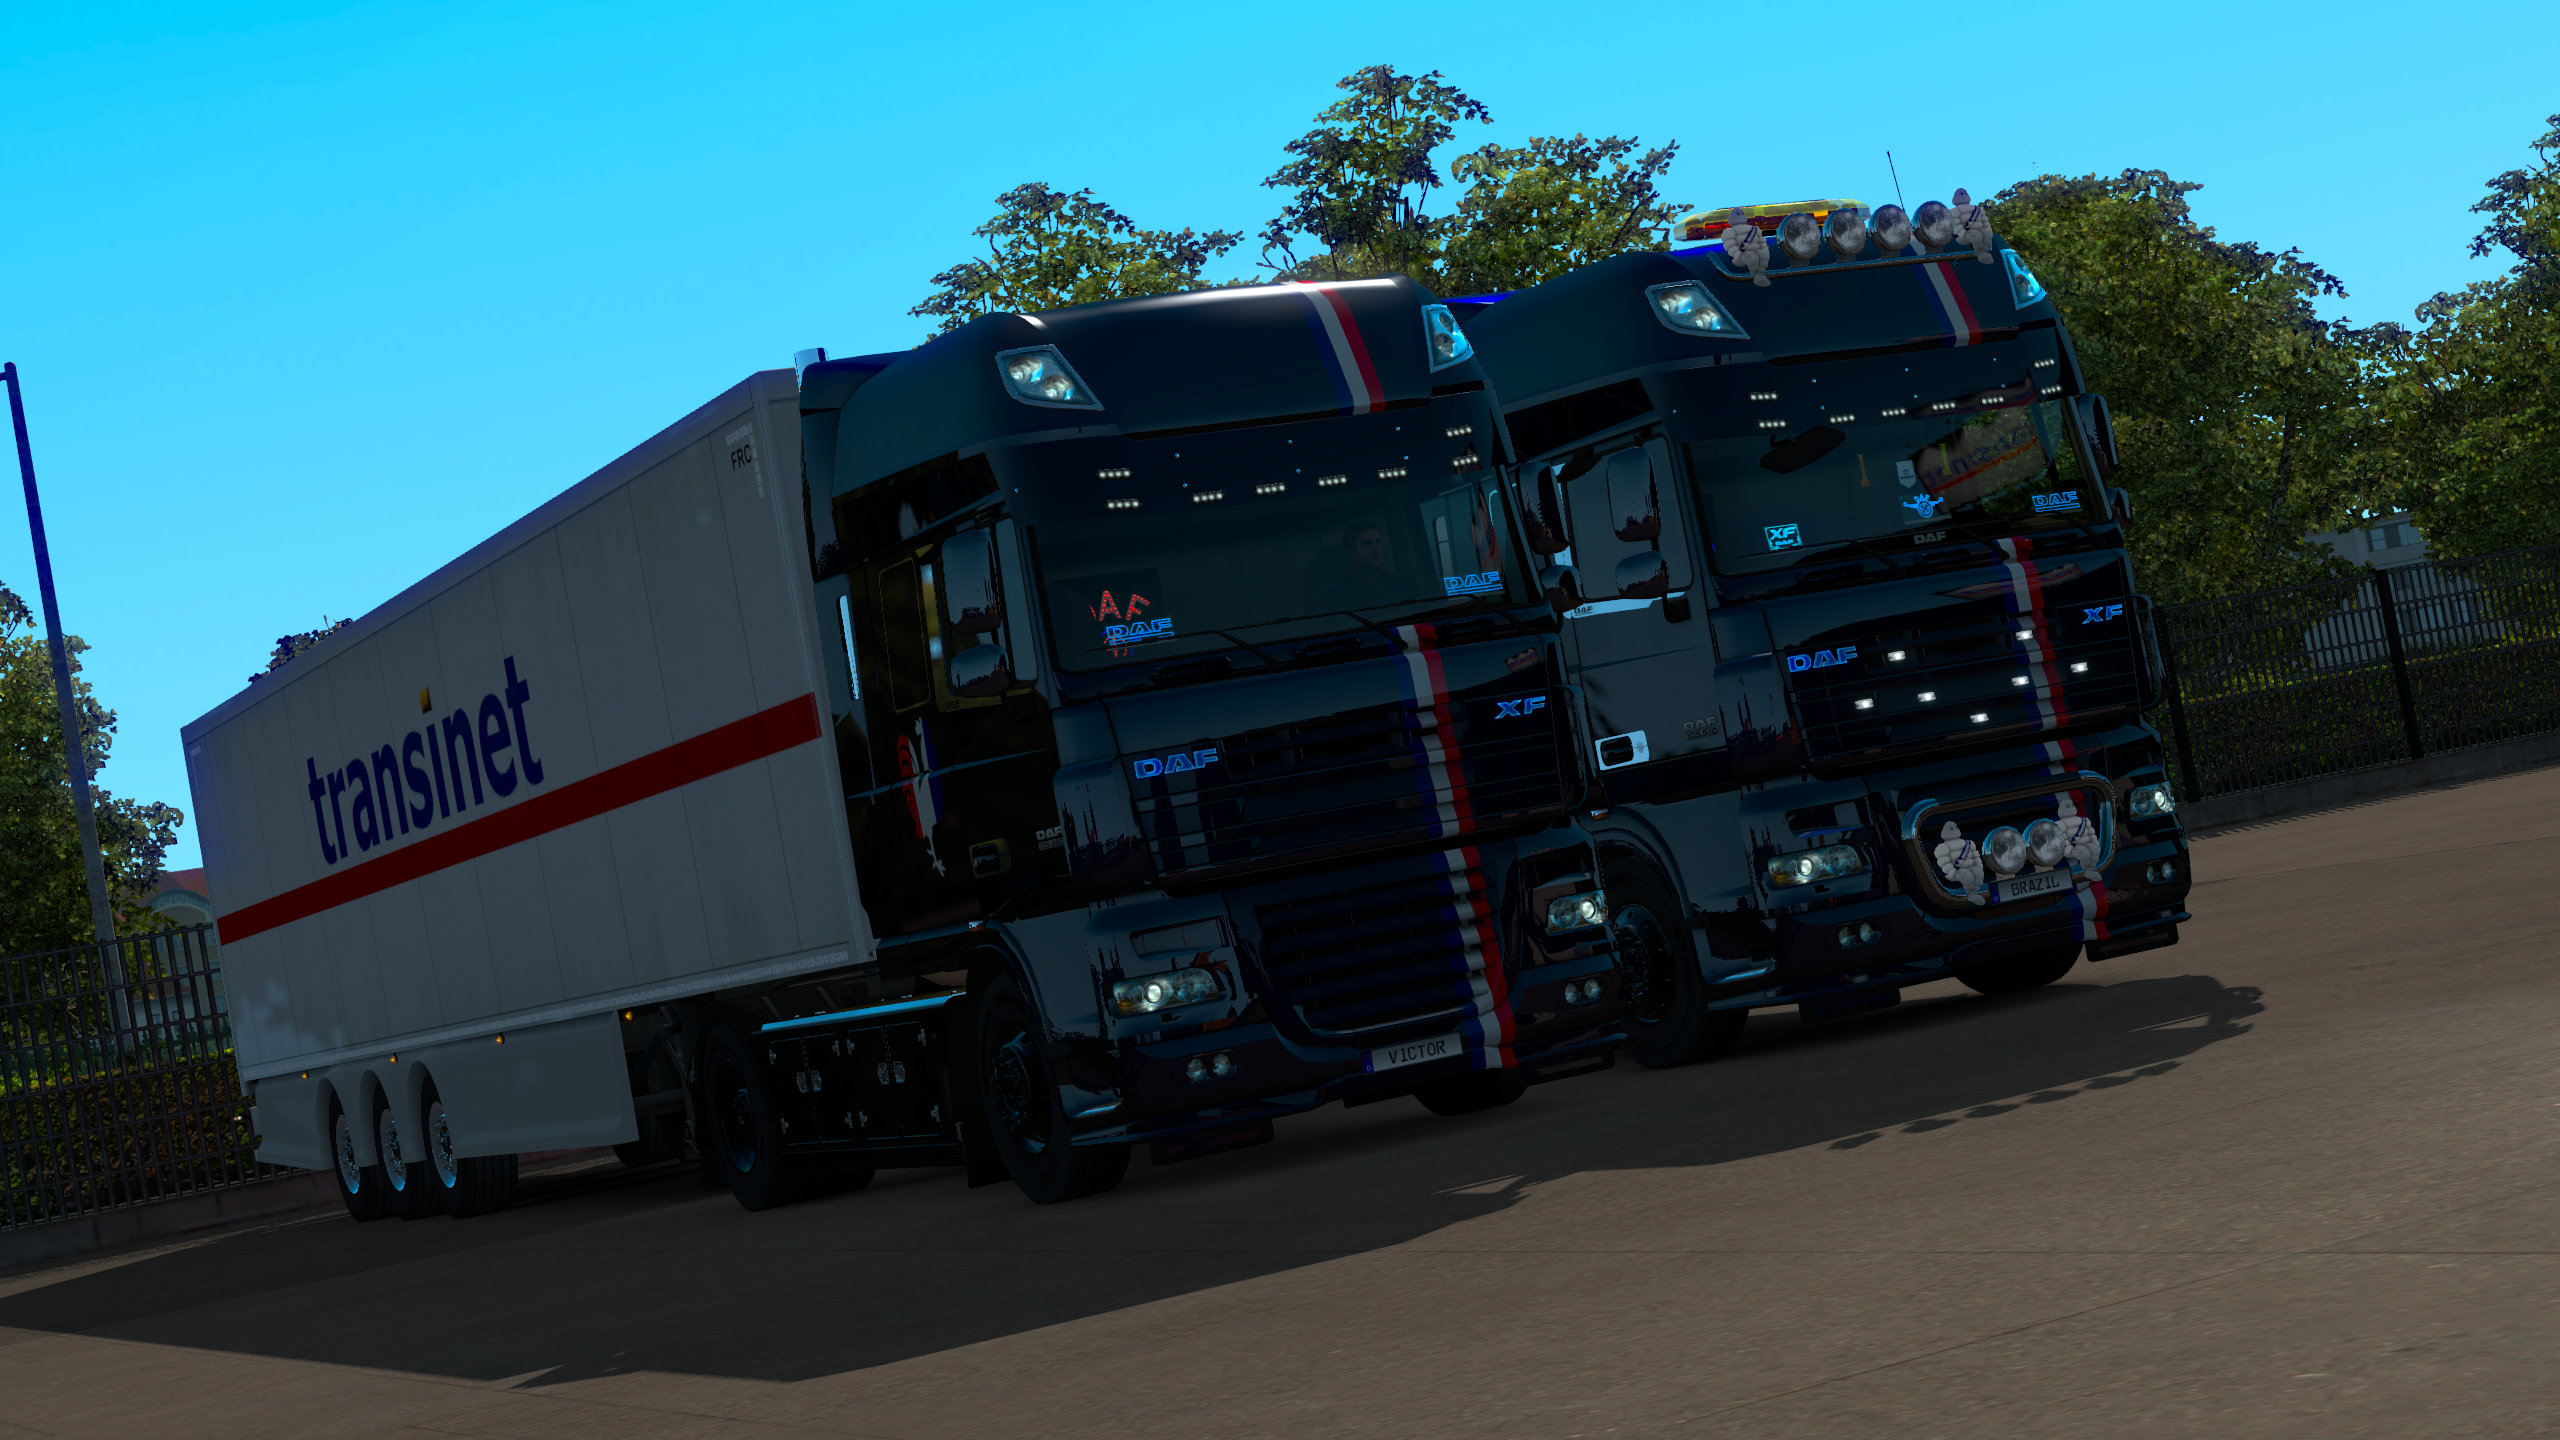 ets2_20181115_214327_00.png